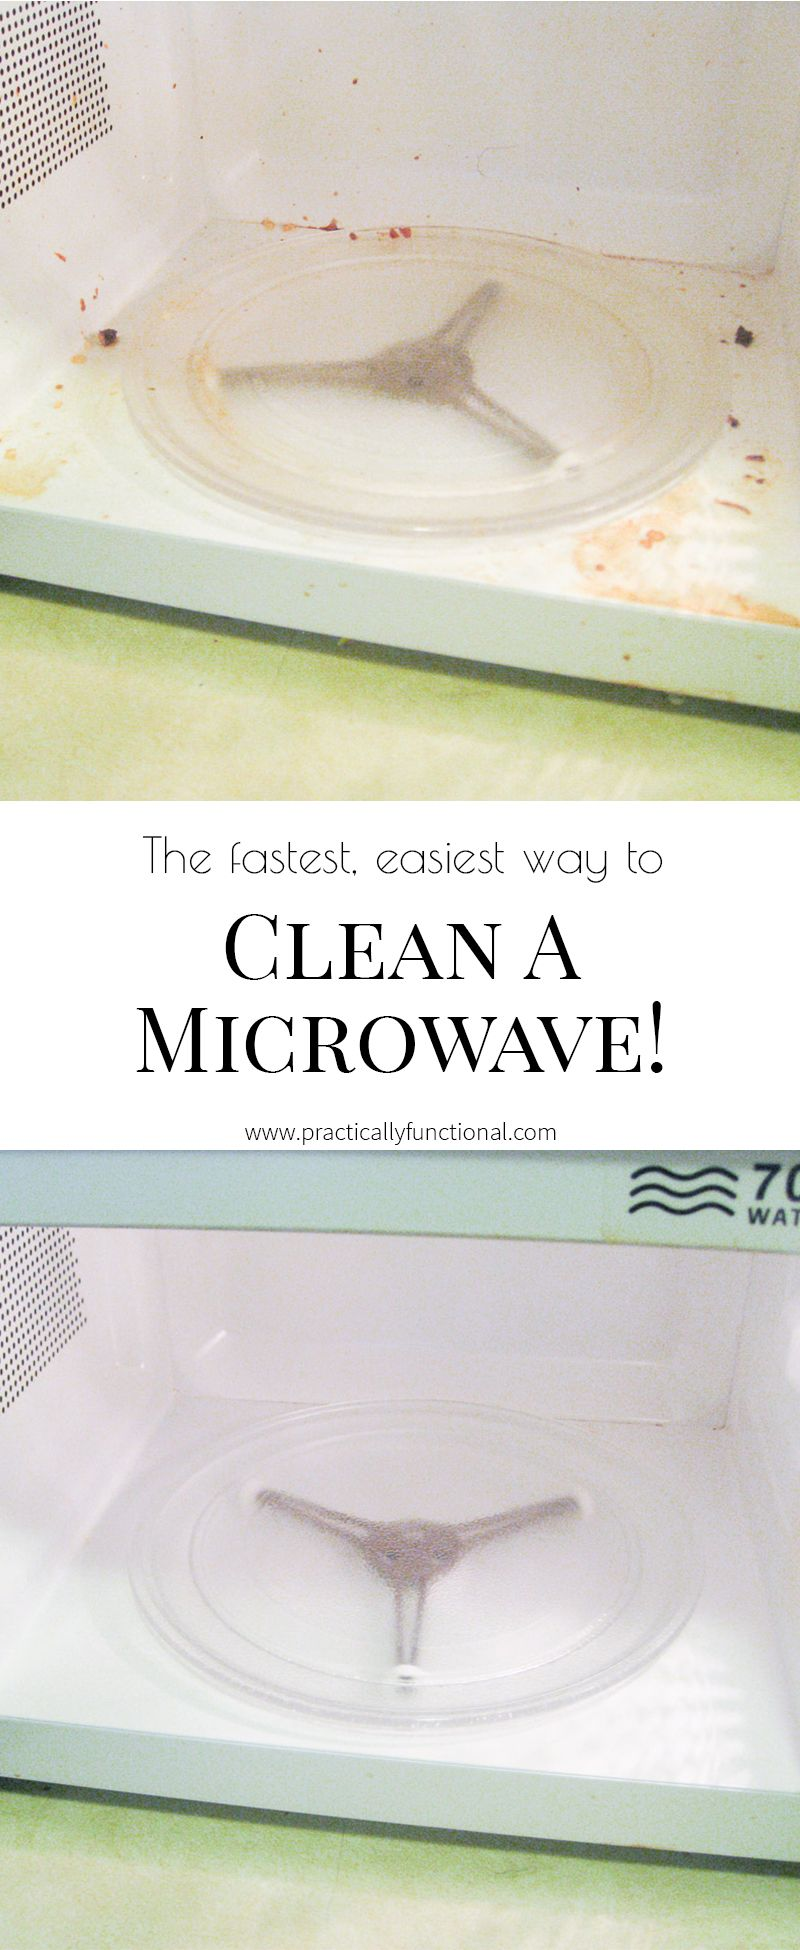 How To Clean A Microwave With Vinegar Steam No Scrubbing